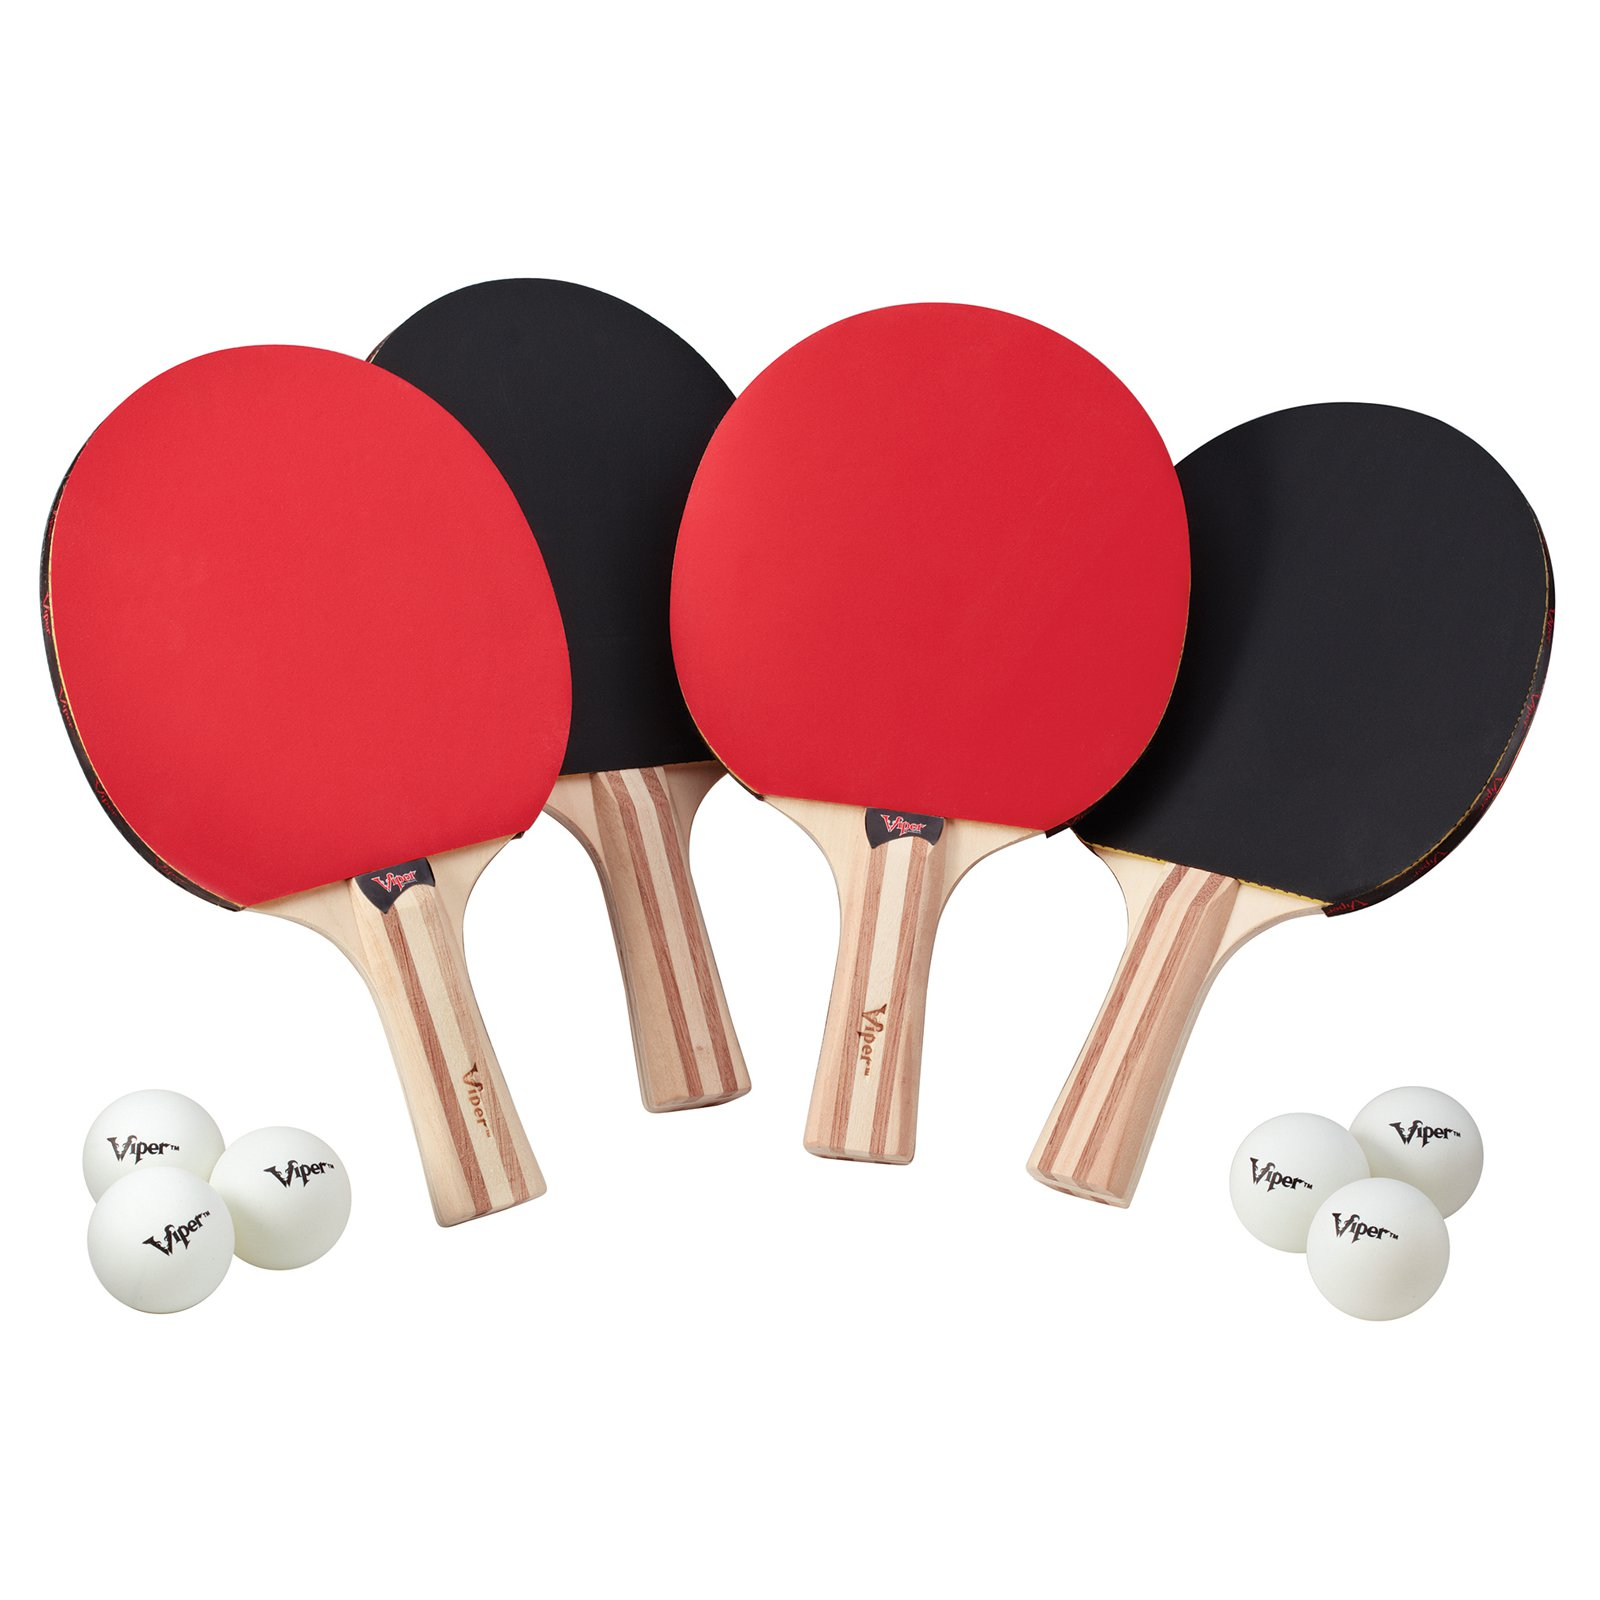 Viper Four-Racket Table Tennis Set - Walmart.com